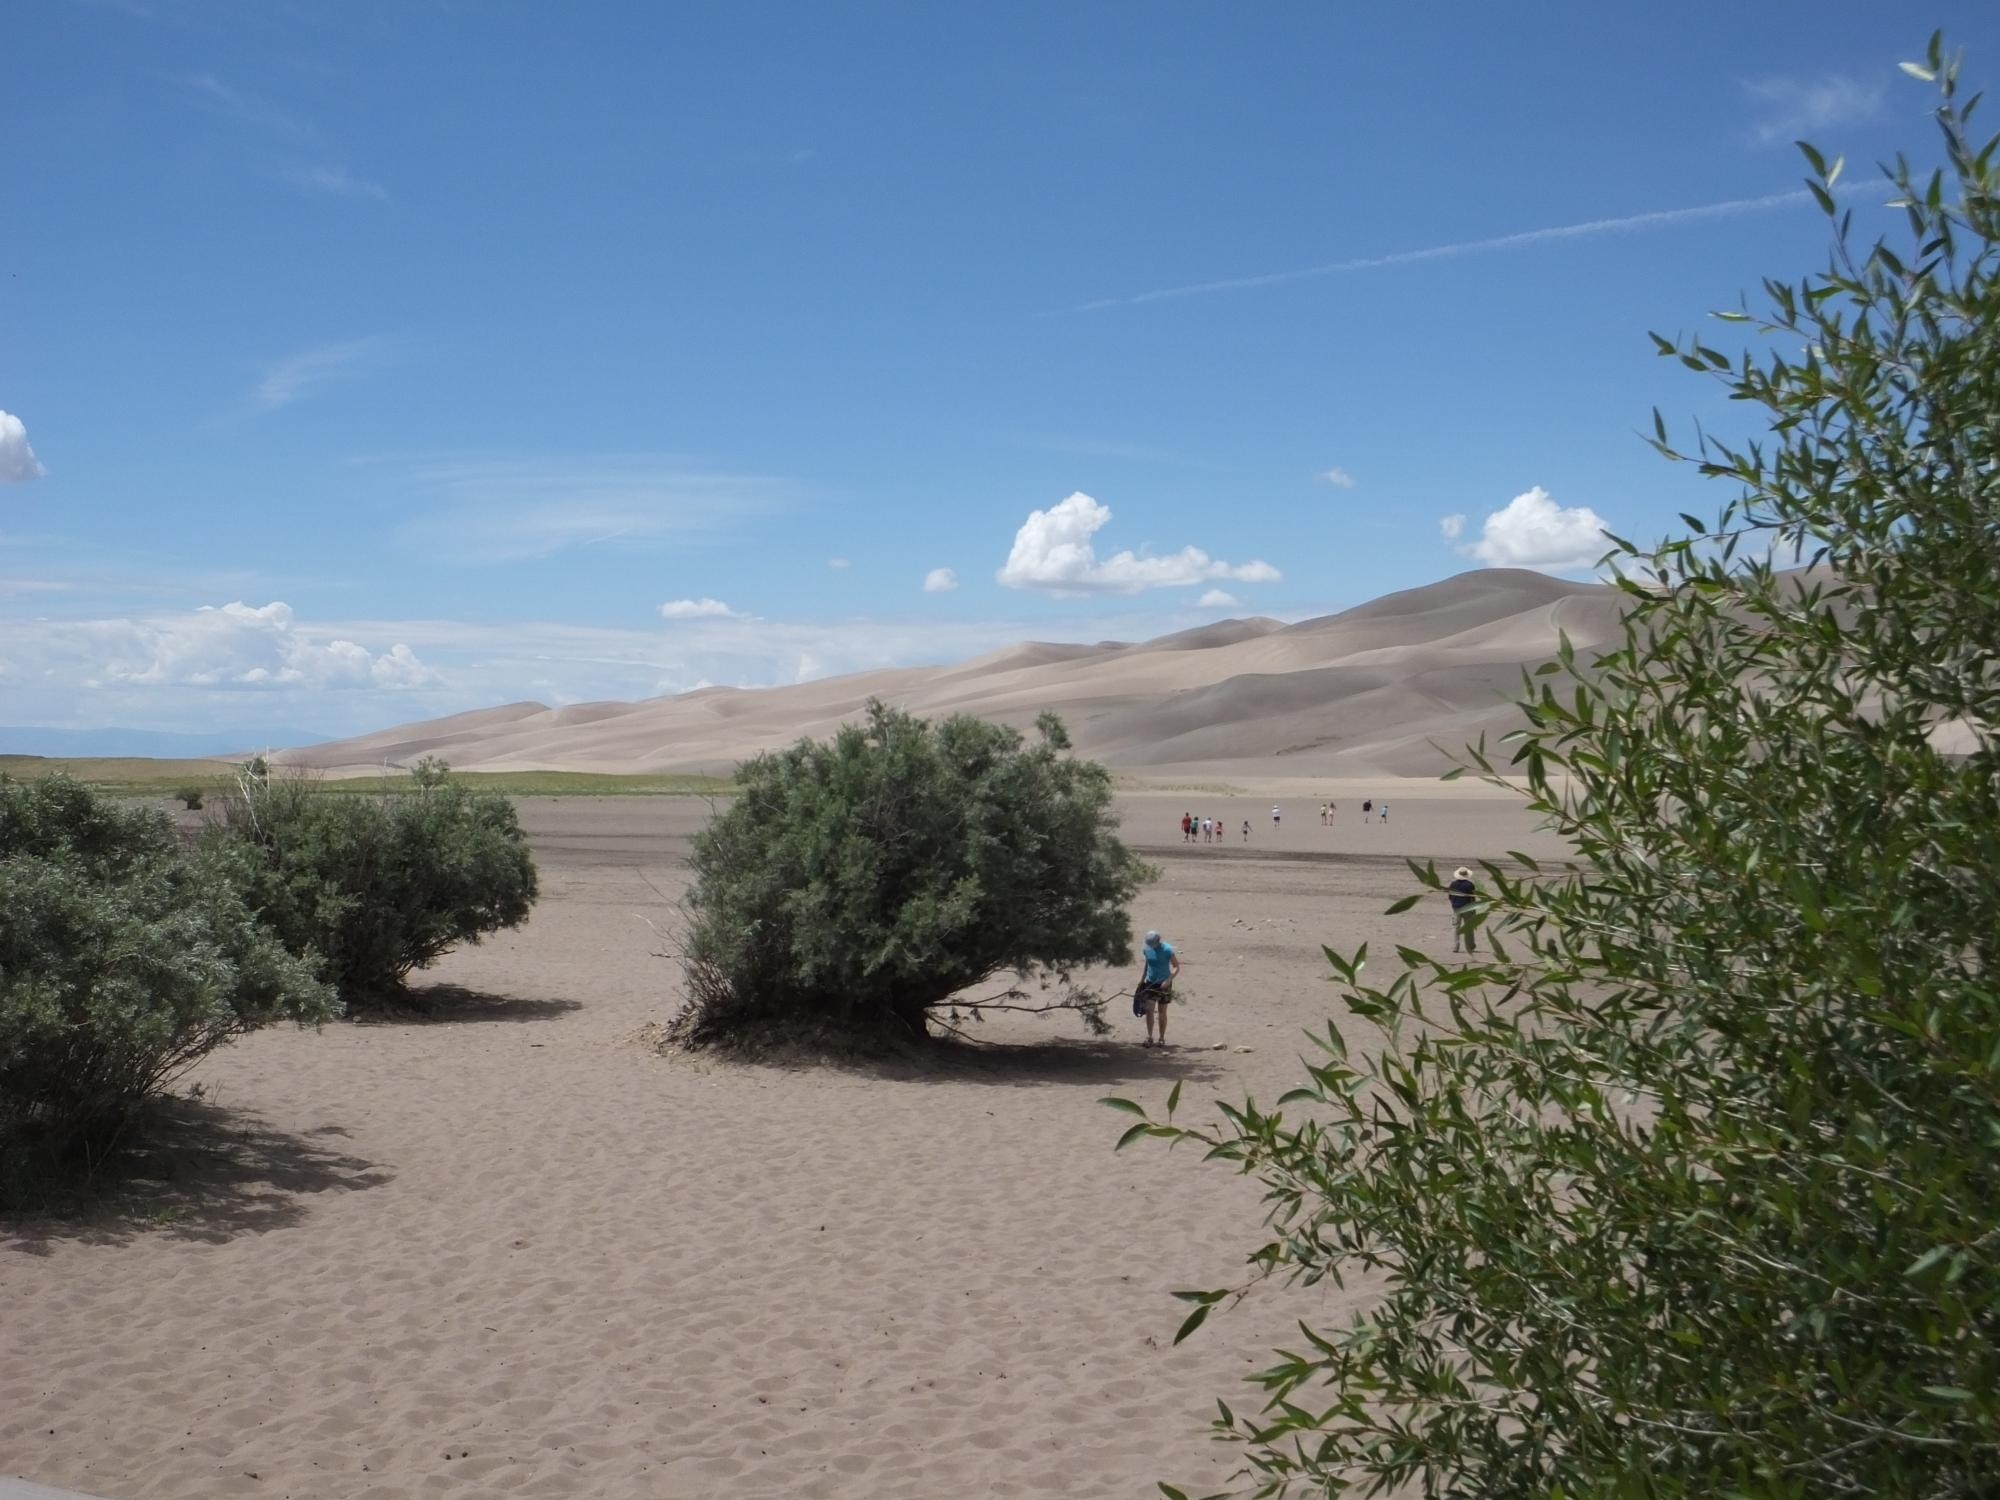 Narrowleaf cottonwood at Great Sand Dunes National Park in Colorado.